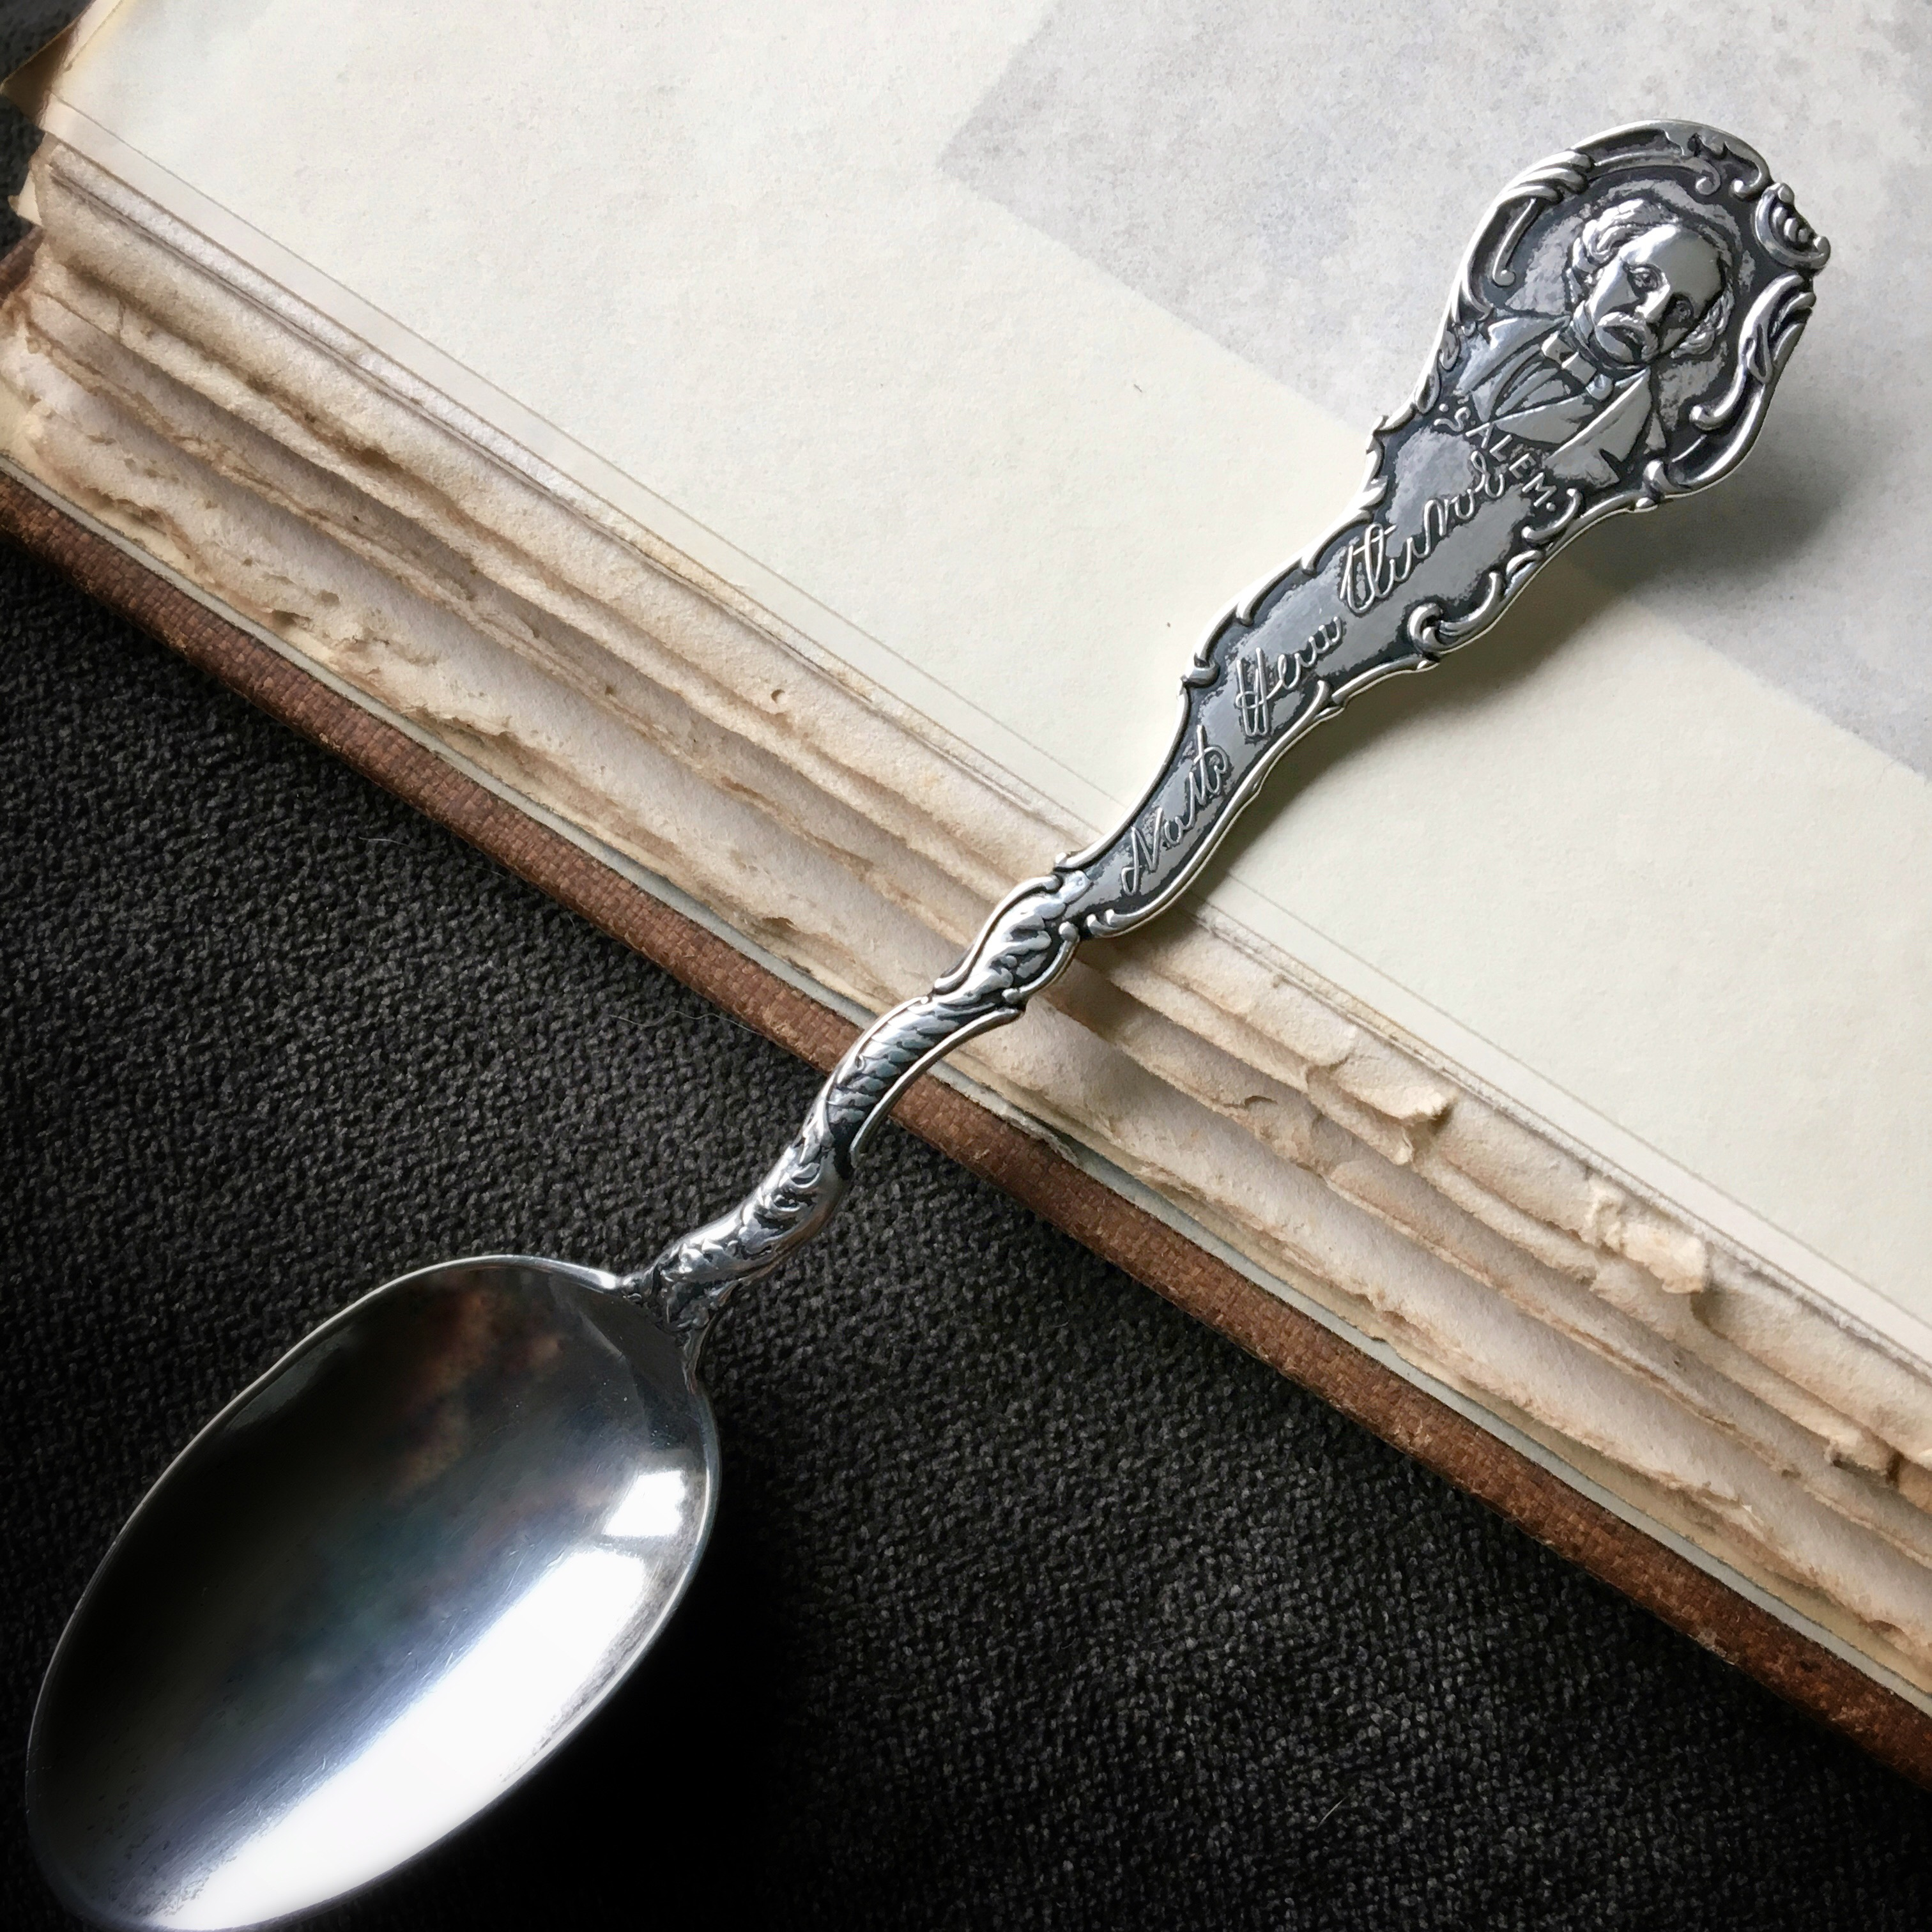 The Nathaniel Hawthorne Spoon (1891). Designed by Daniel Low, manufactured by Wm. B. Durgin & Co.